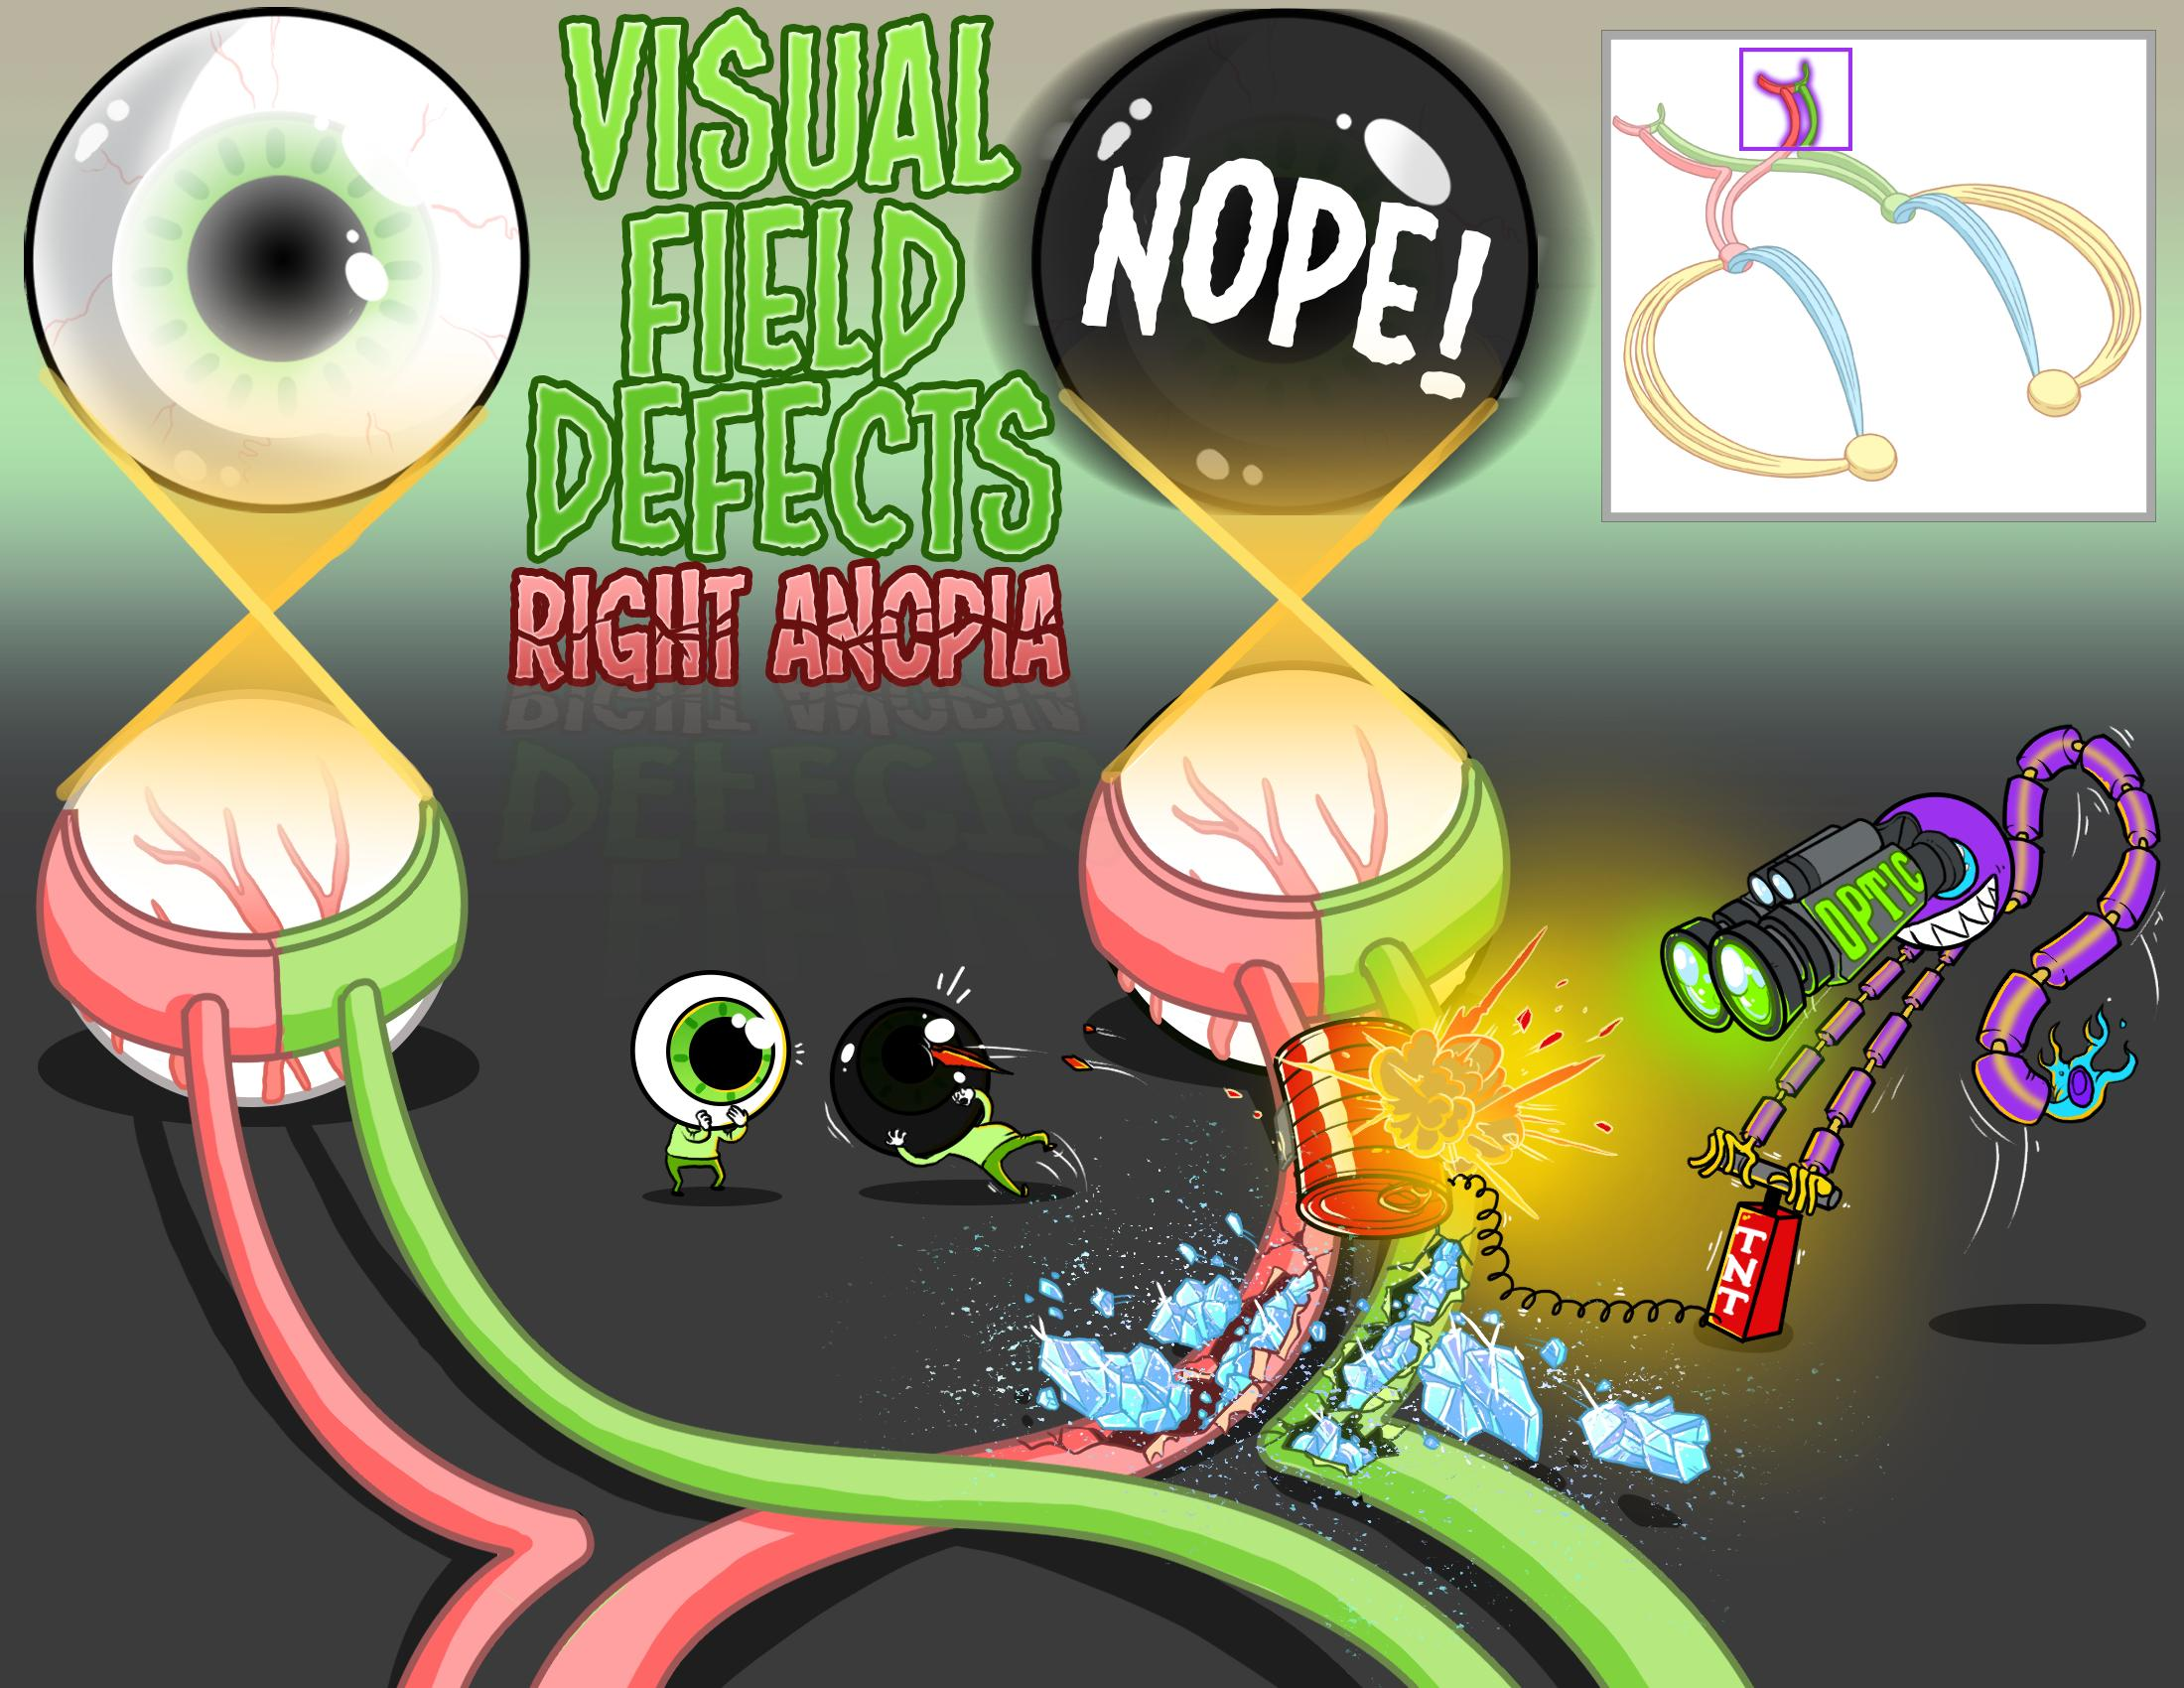 Visual Field Defects - Right Anopia